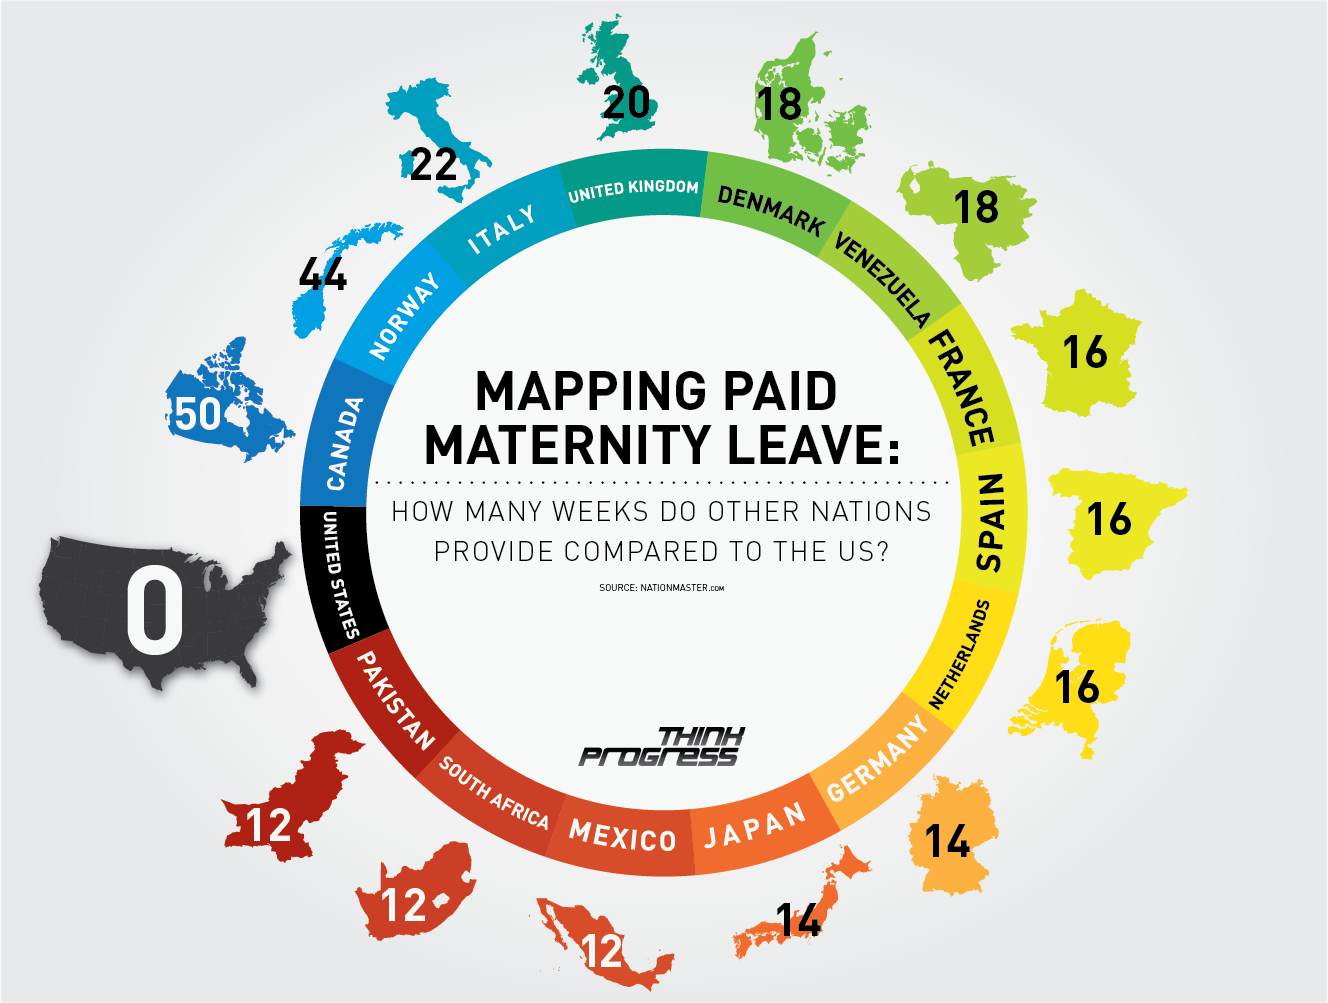 Maternity leave around the world. My job made me use all accrued vacation and sick days to take off with pay!